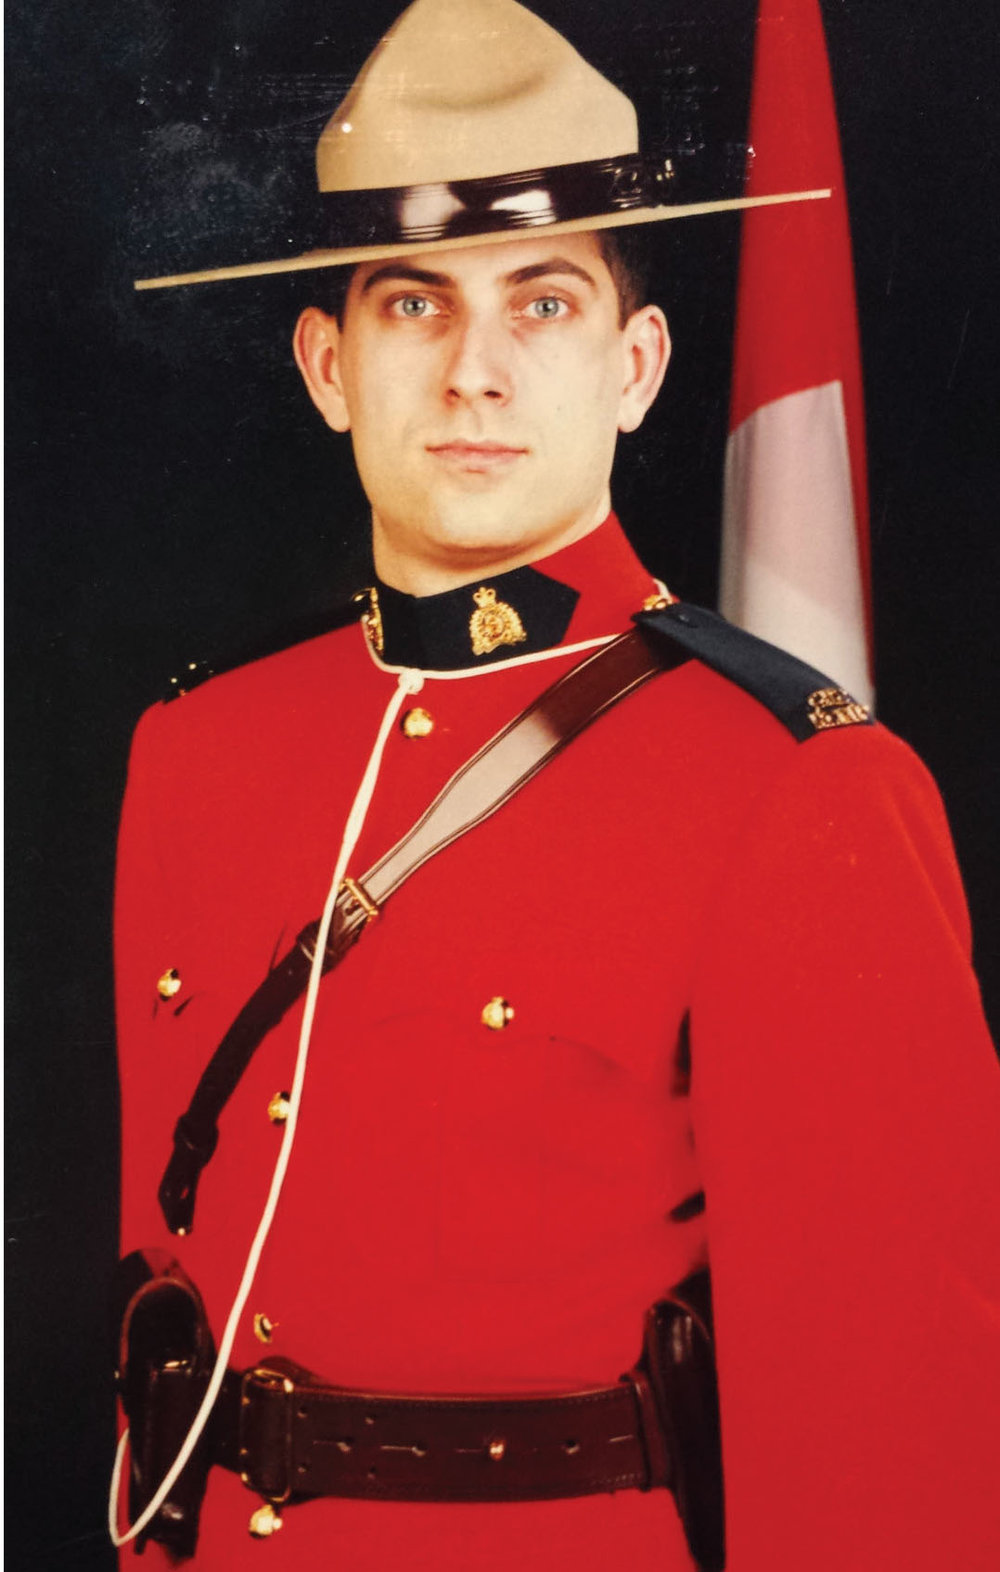 The Constable Doug Larche Memorial Bursary Fund